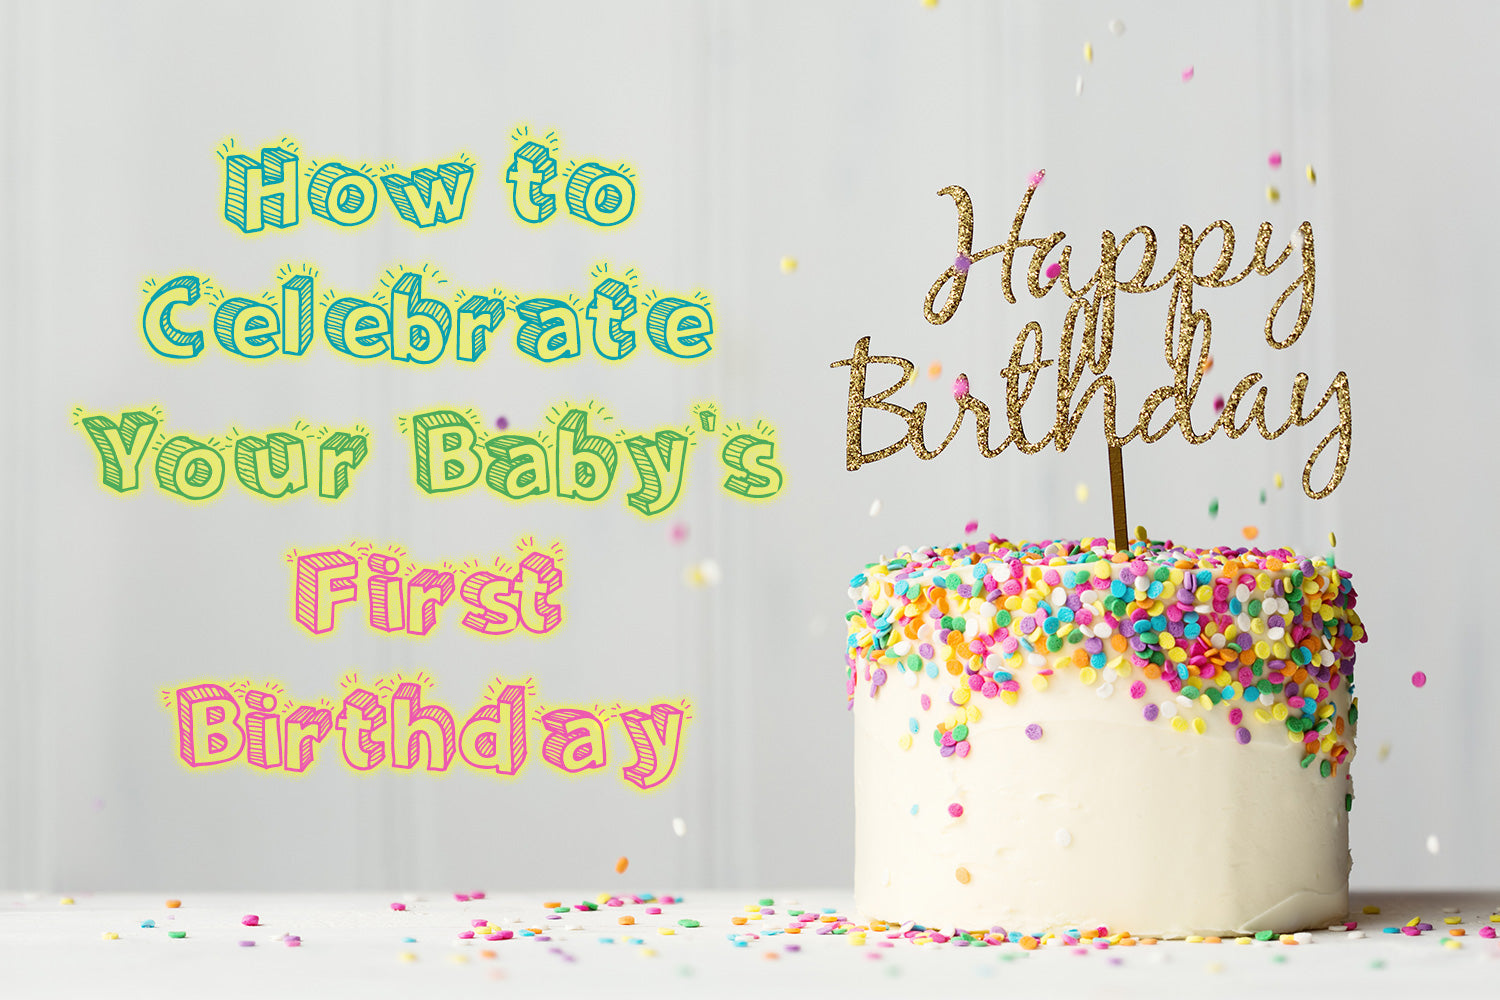 How to Celebrate Your Baby's First Birthday